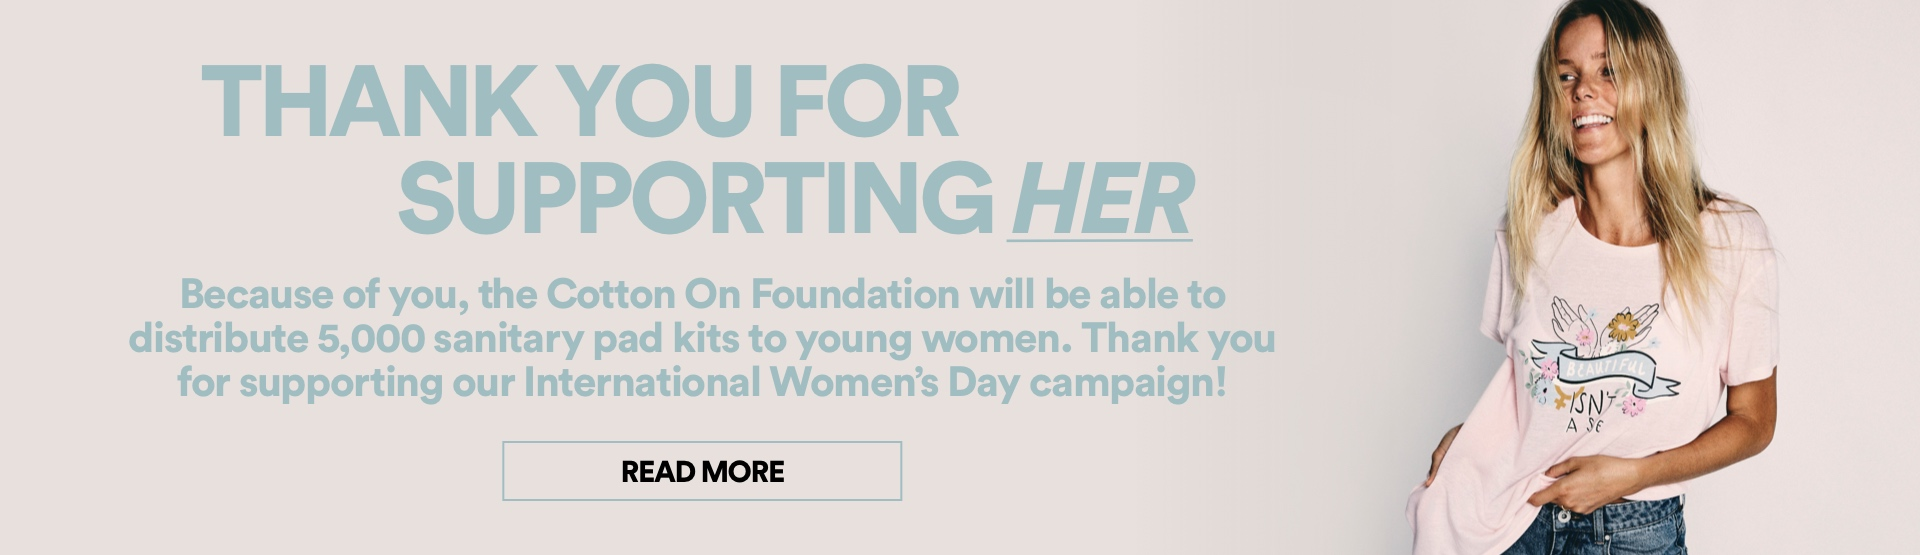 Thanks for Supporting HER for International Women's Day. Click to read more.